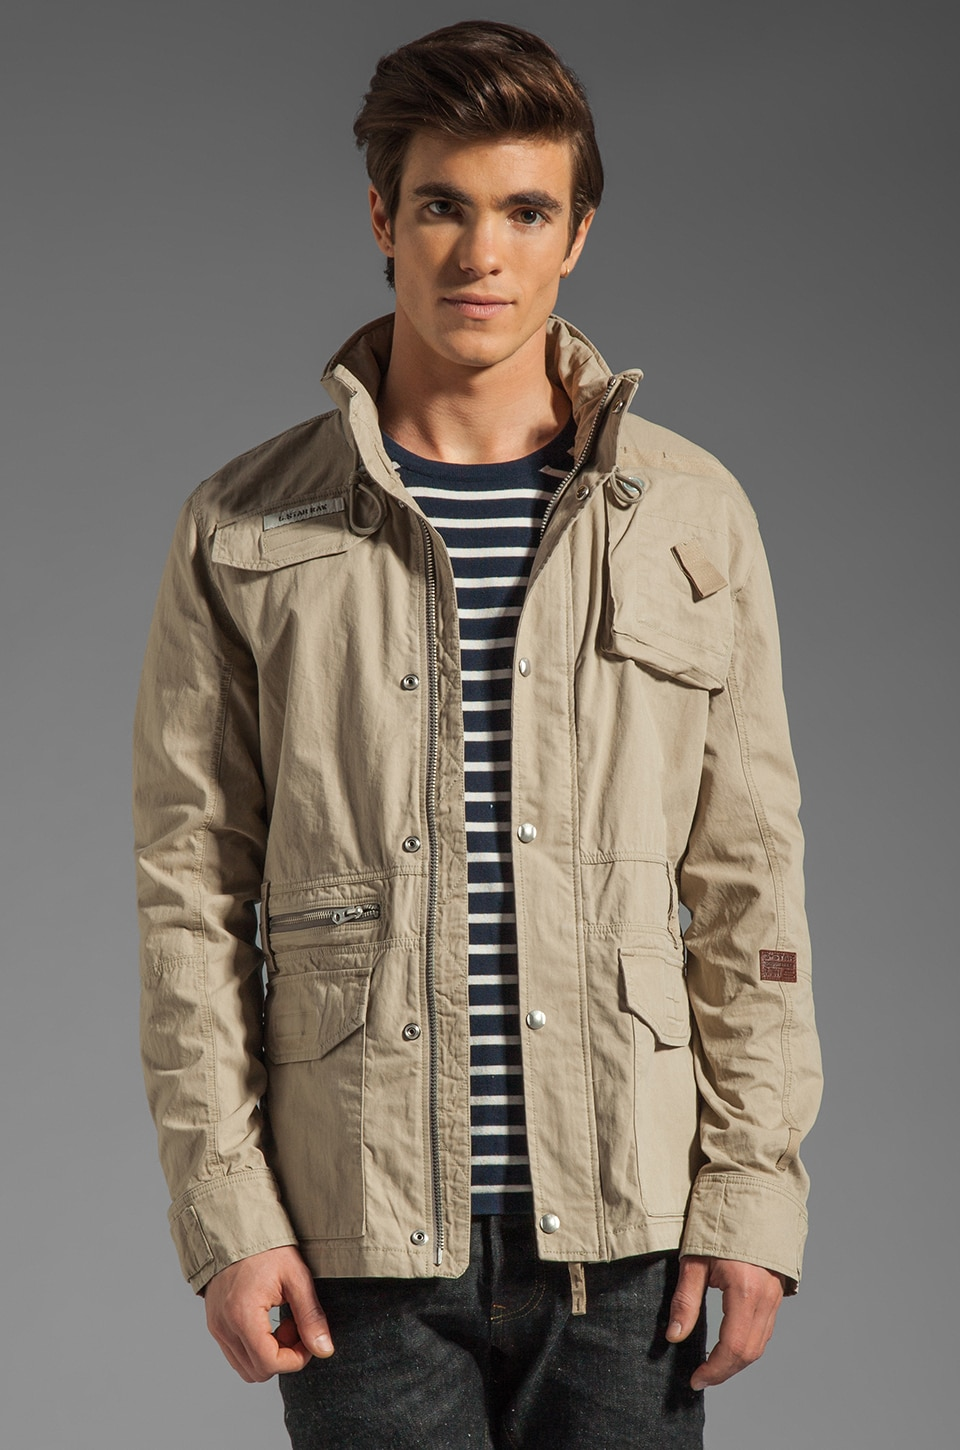 G-Star RCO Lockhart Field Jacket in Grege